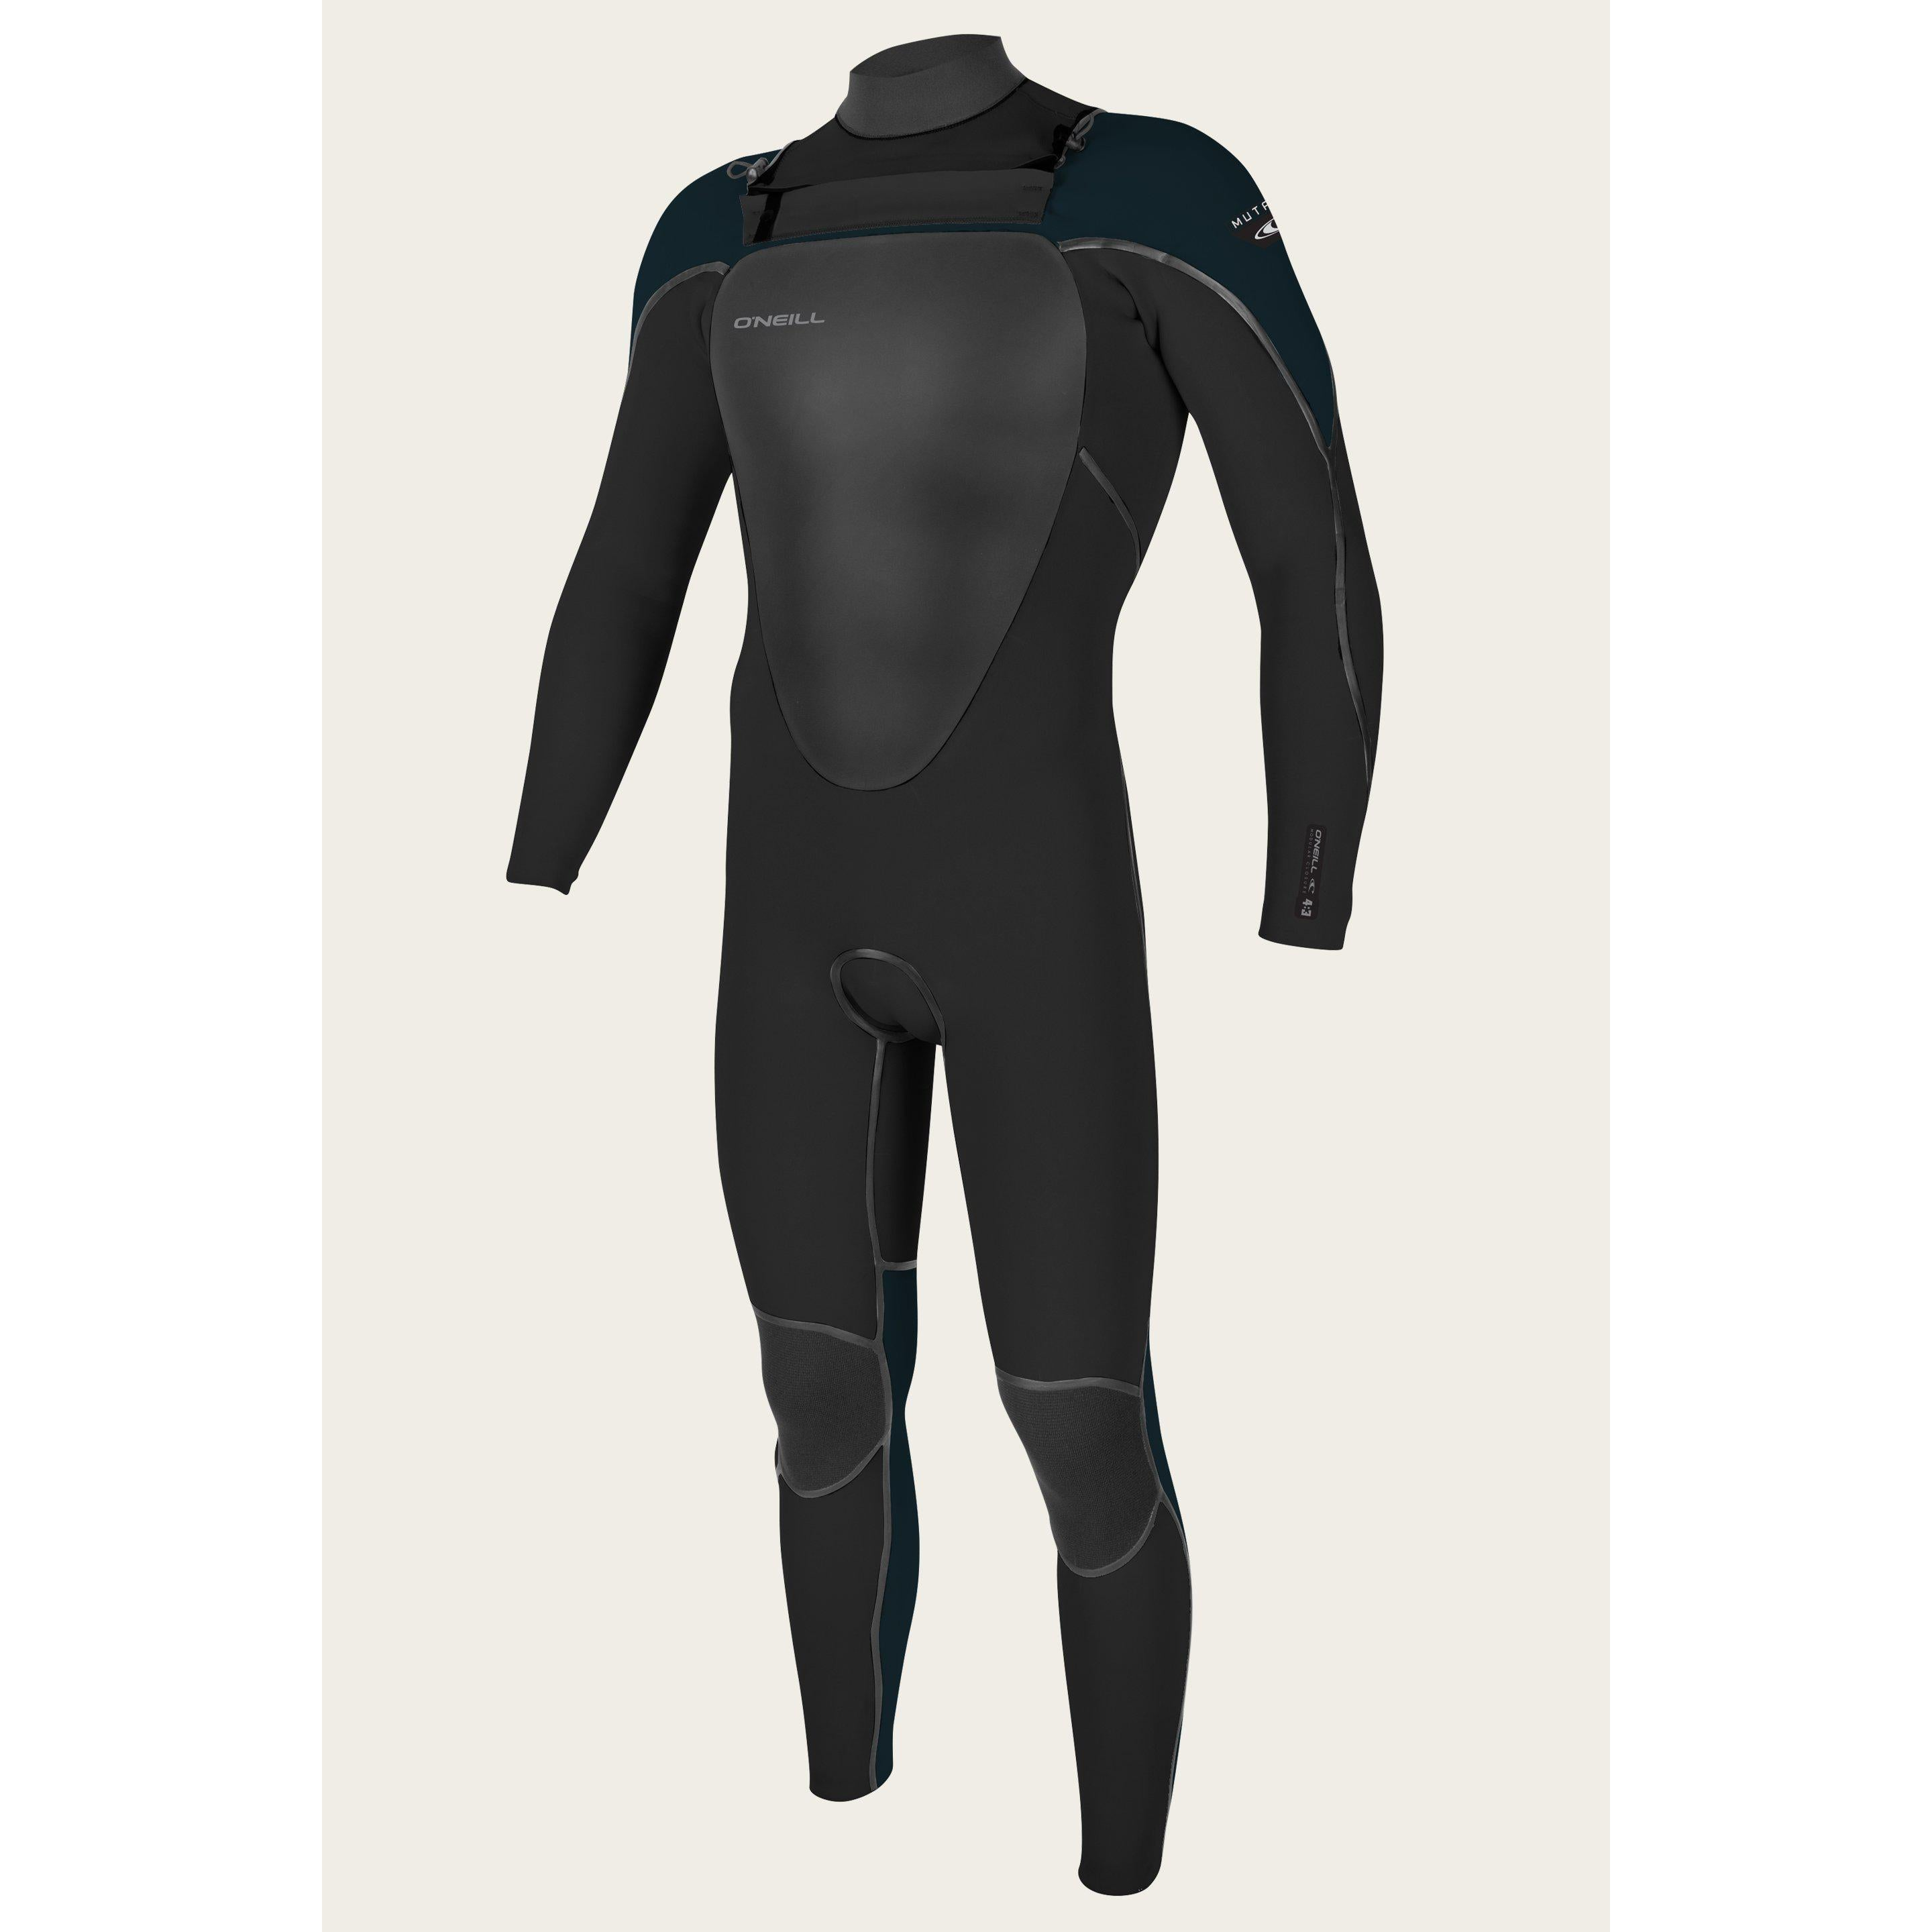 O'NEILL YOUTH MUTANT 5/4/3MM CHEST ZIP FULL W/HOOD WETSUIT-Wetsuits-Big Winds